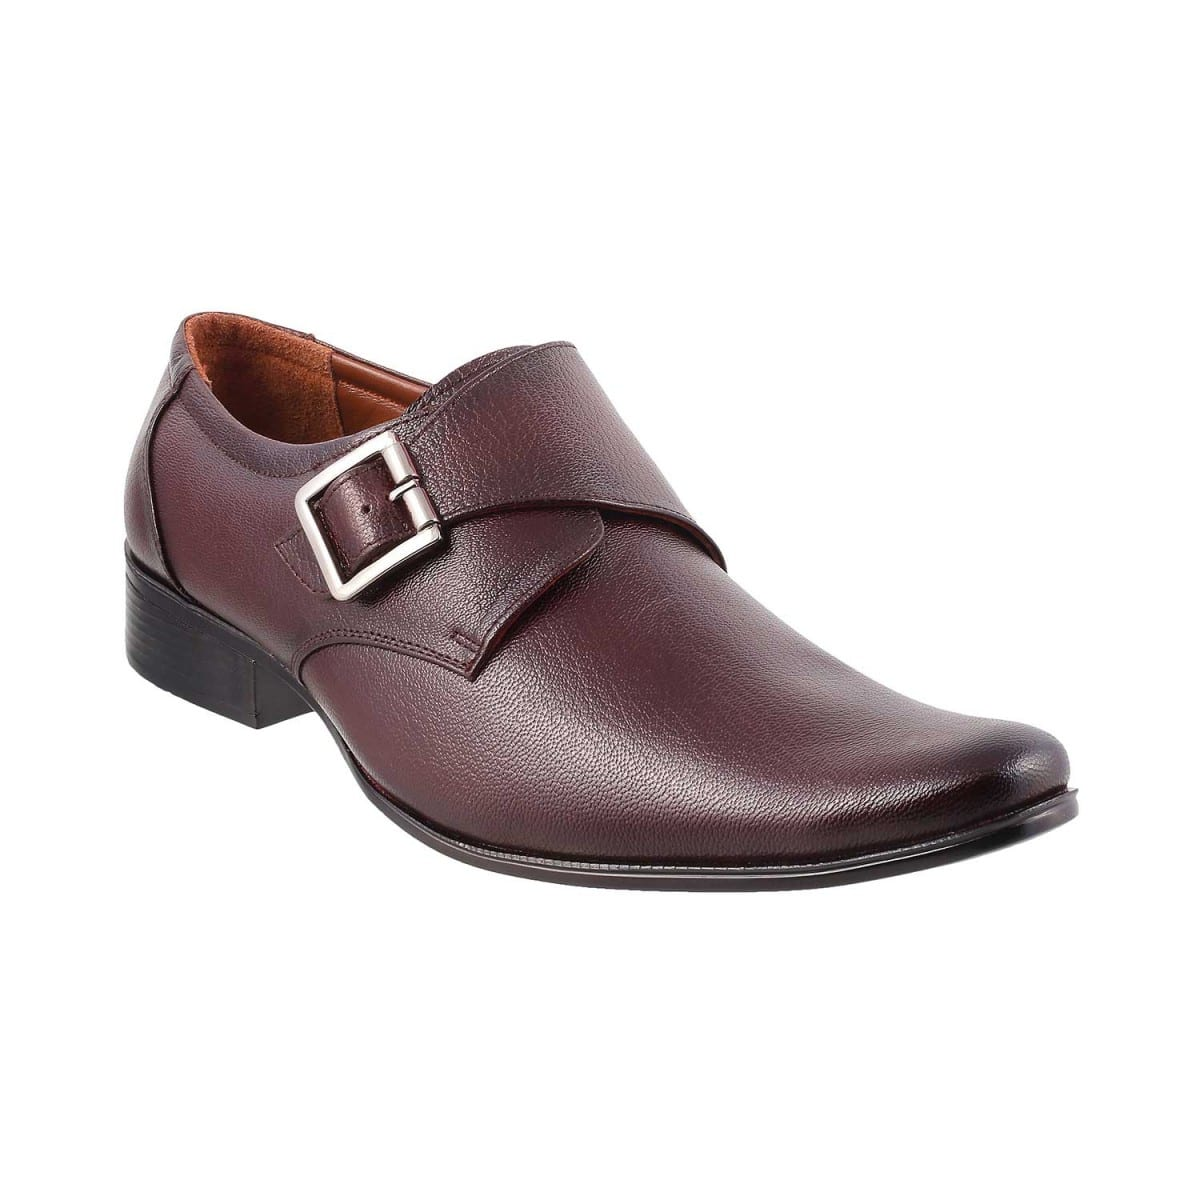 monk strap shoes for men by metro shoes